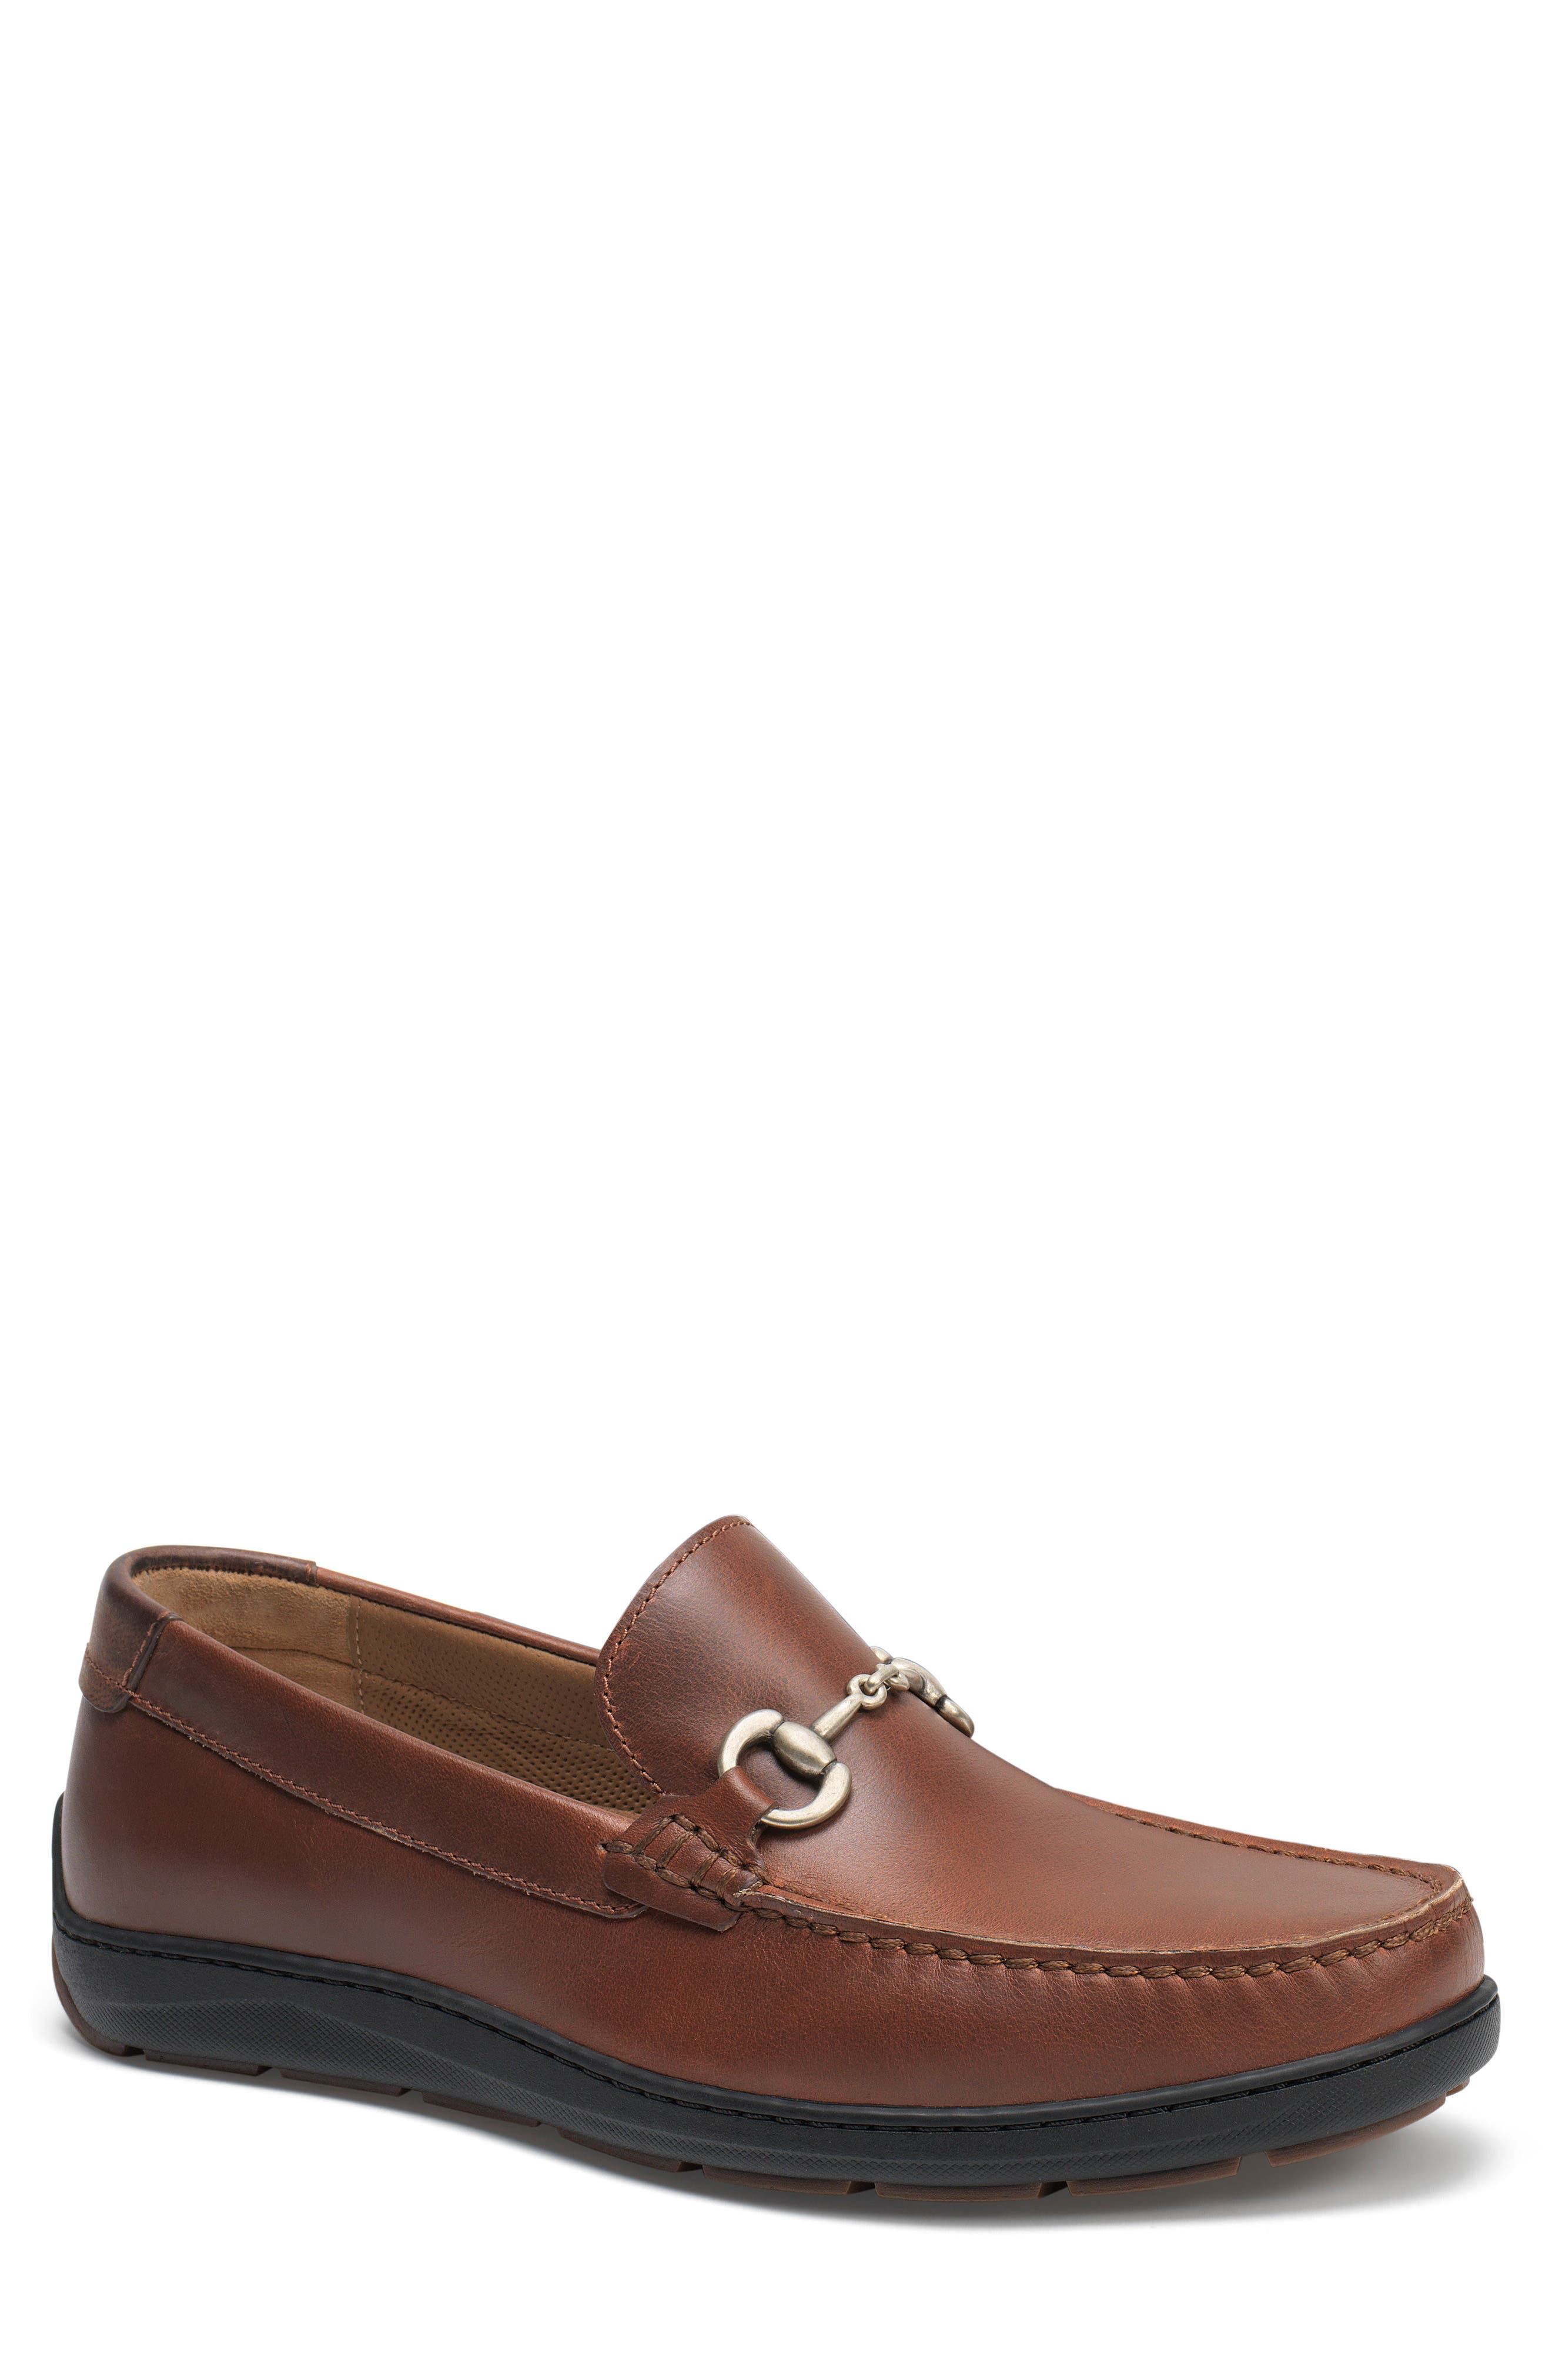 Stalworth Bit Loafer,                             Main thumbnail 1, color,                             Brandy Leather